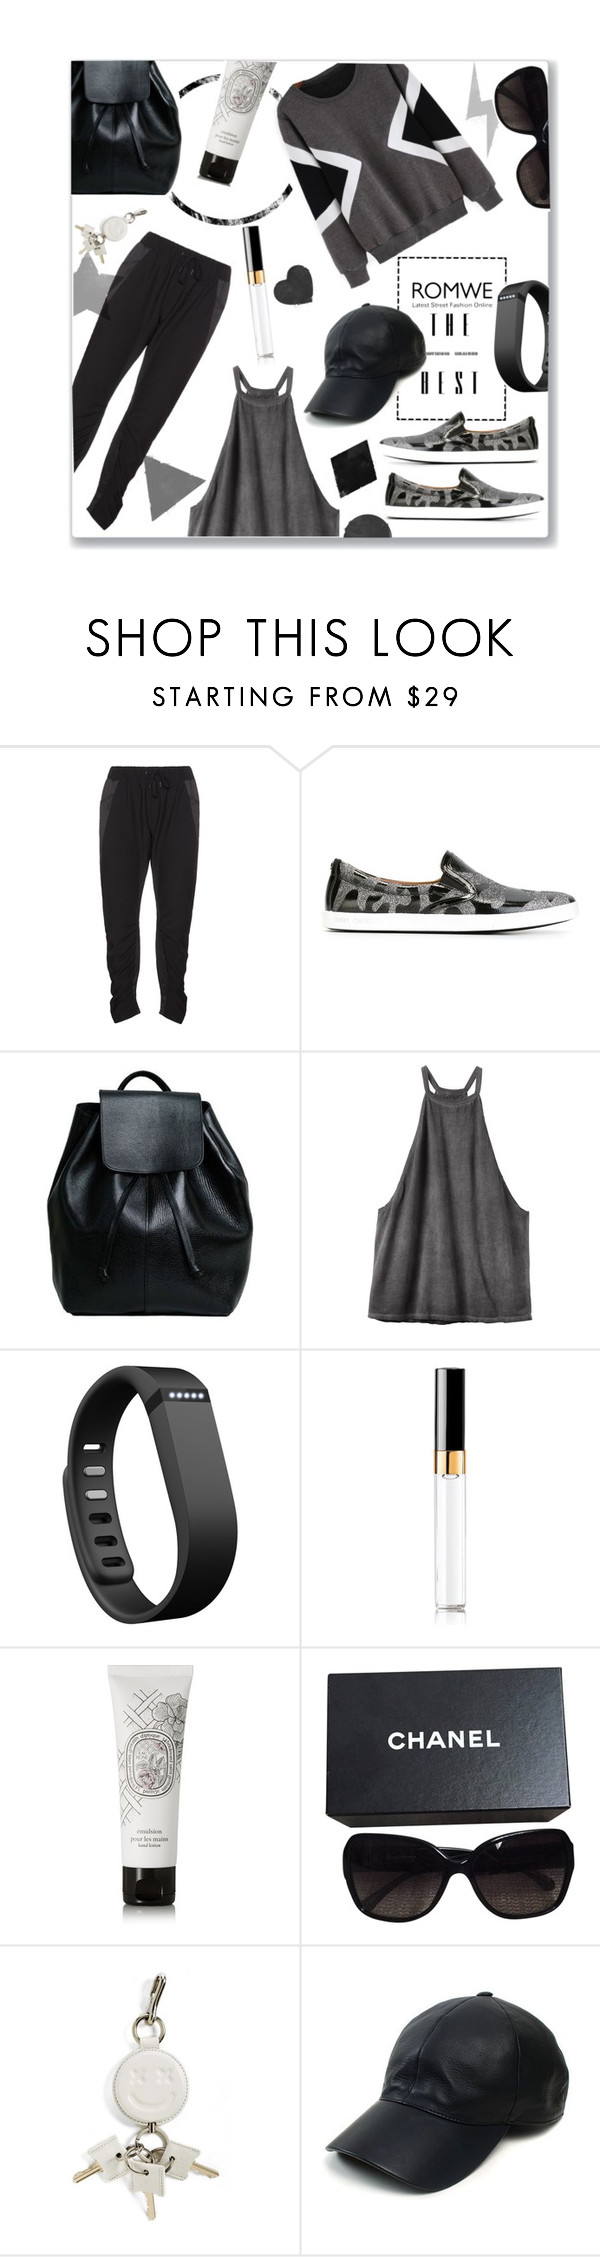 """""""shape it up"""" by jckallan ❤ liked on Polyvore featuring Carmakoma, Jimmy Choo, RVCA, Fitbit, Chanel, Diptyque, Alexander Wang, Vianel, women's clothing and women"""